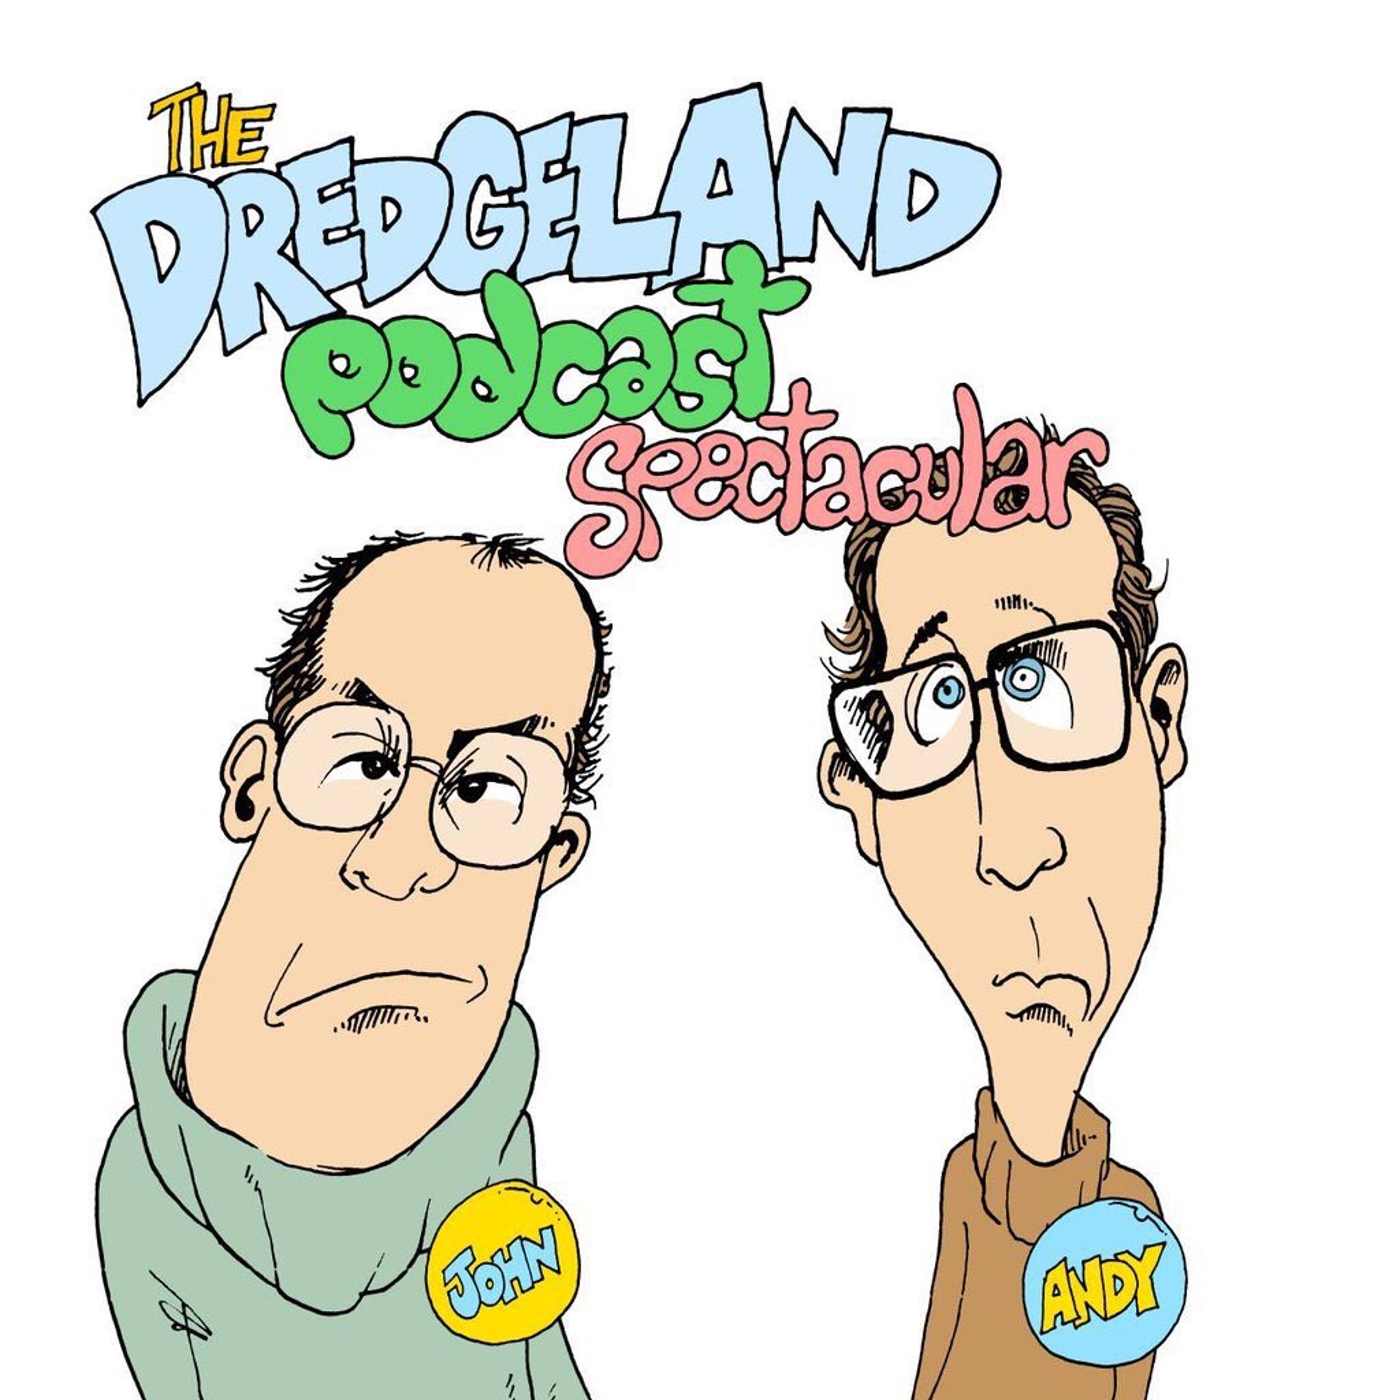 The DredgeLand Riverside Radio Roadshow (12th September 2019)